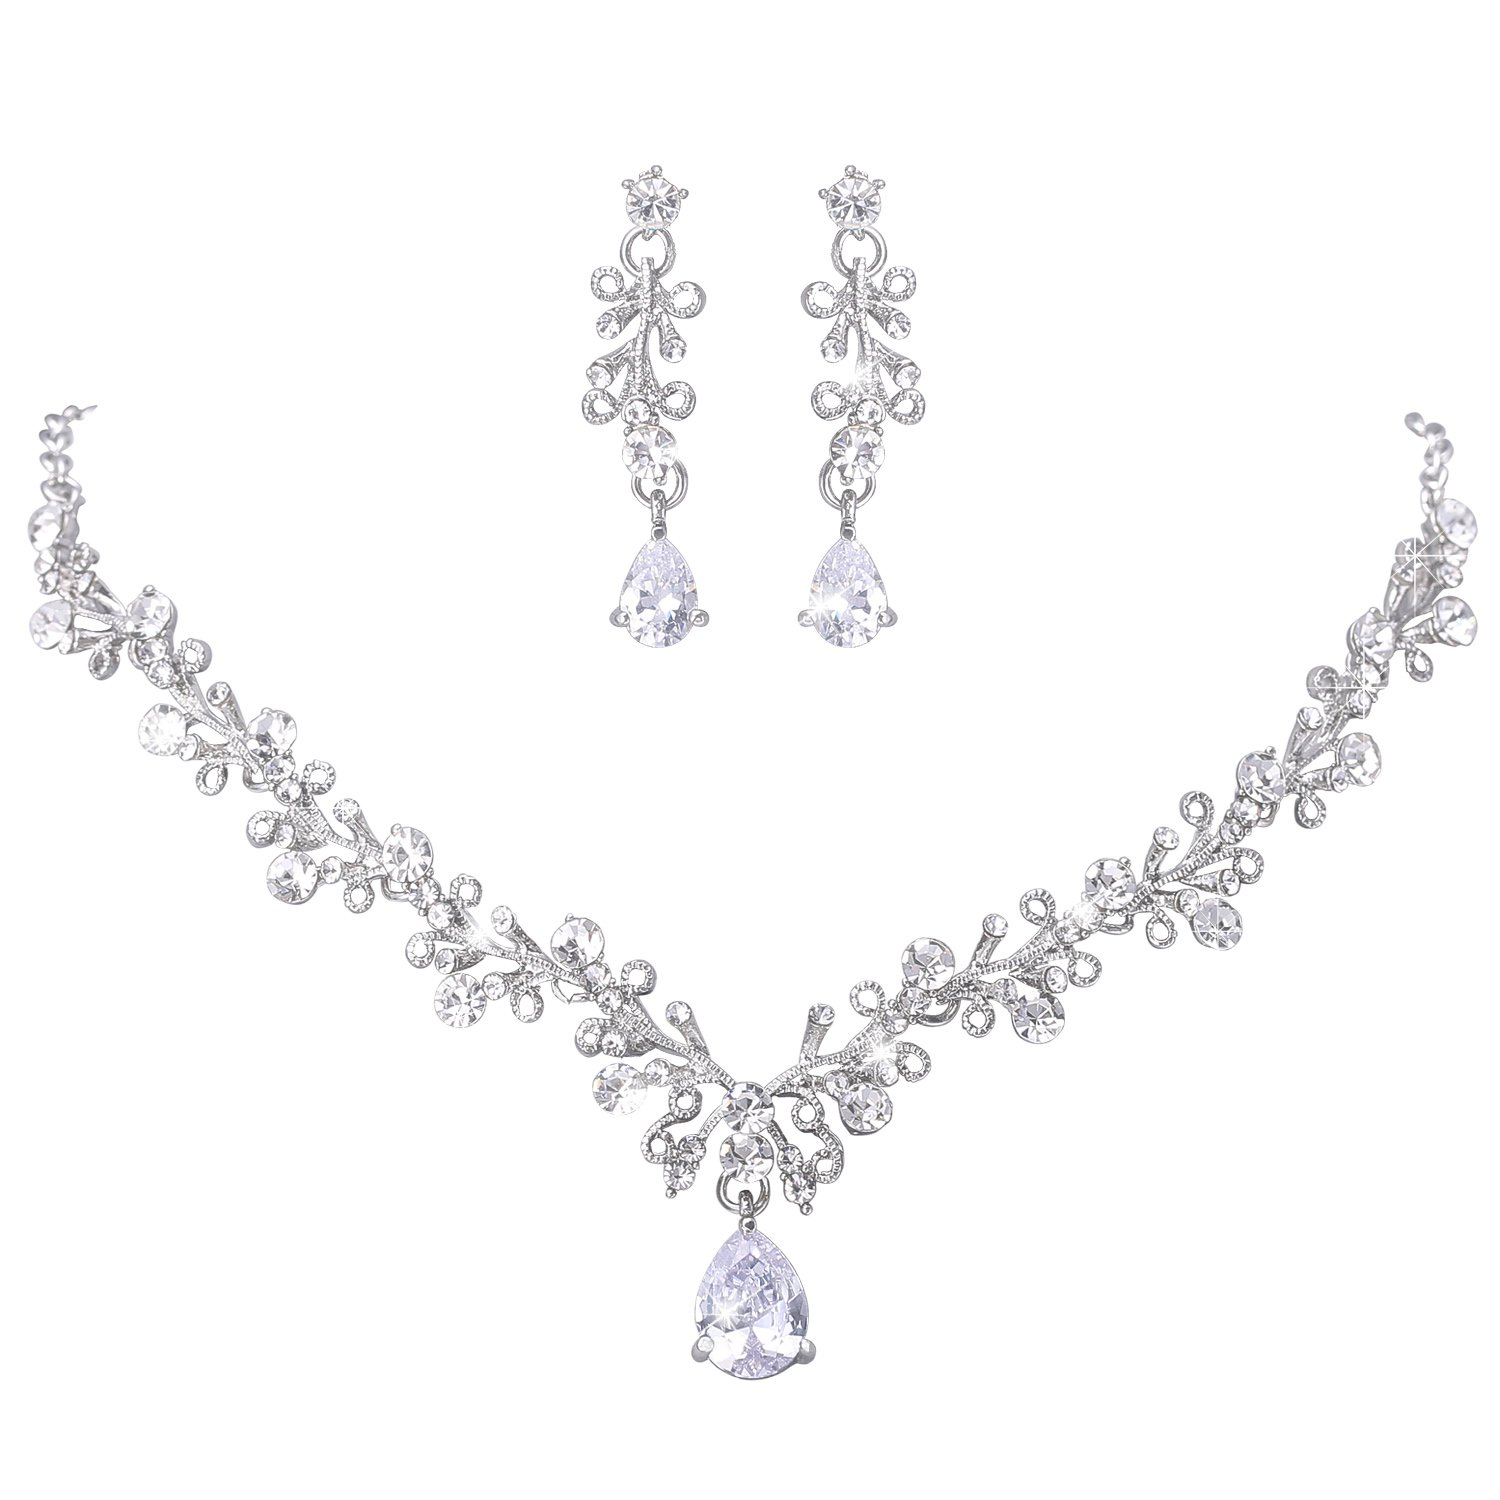 LILIE&WHITE Clear Crystal and Cubic Zircon Necklace and Earrings Jewelry Set For Wedding, Prom, Bridesmaids or Mother of Bride TL00012A